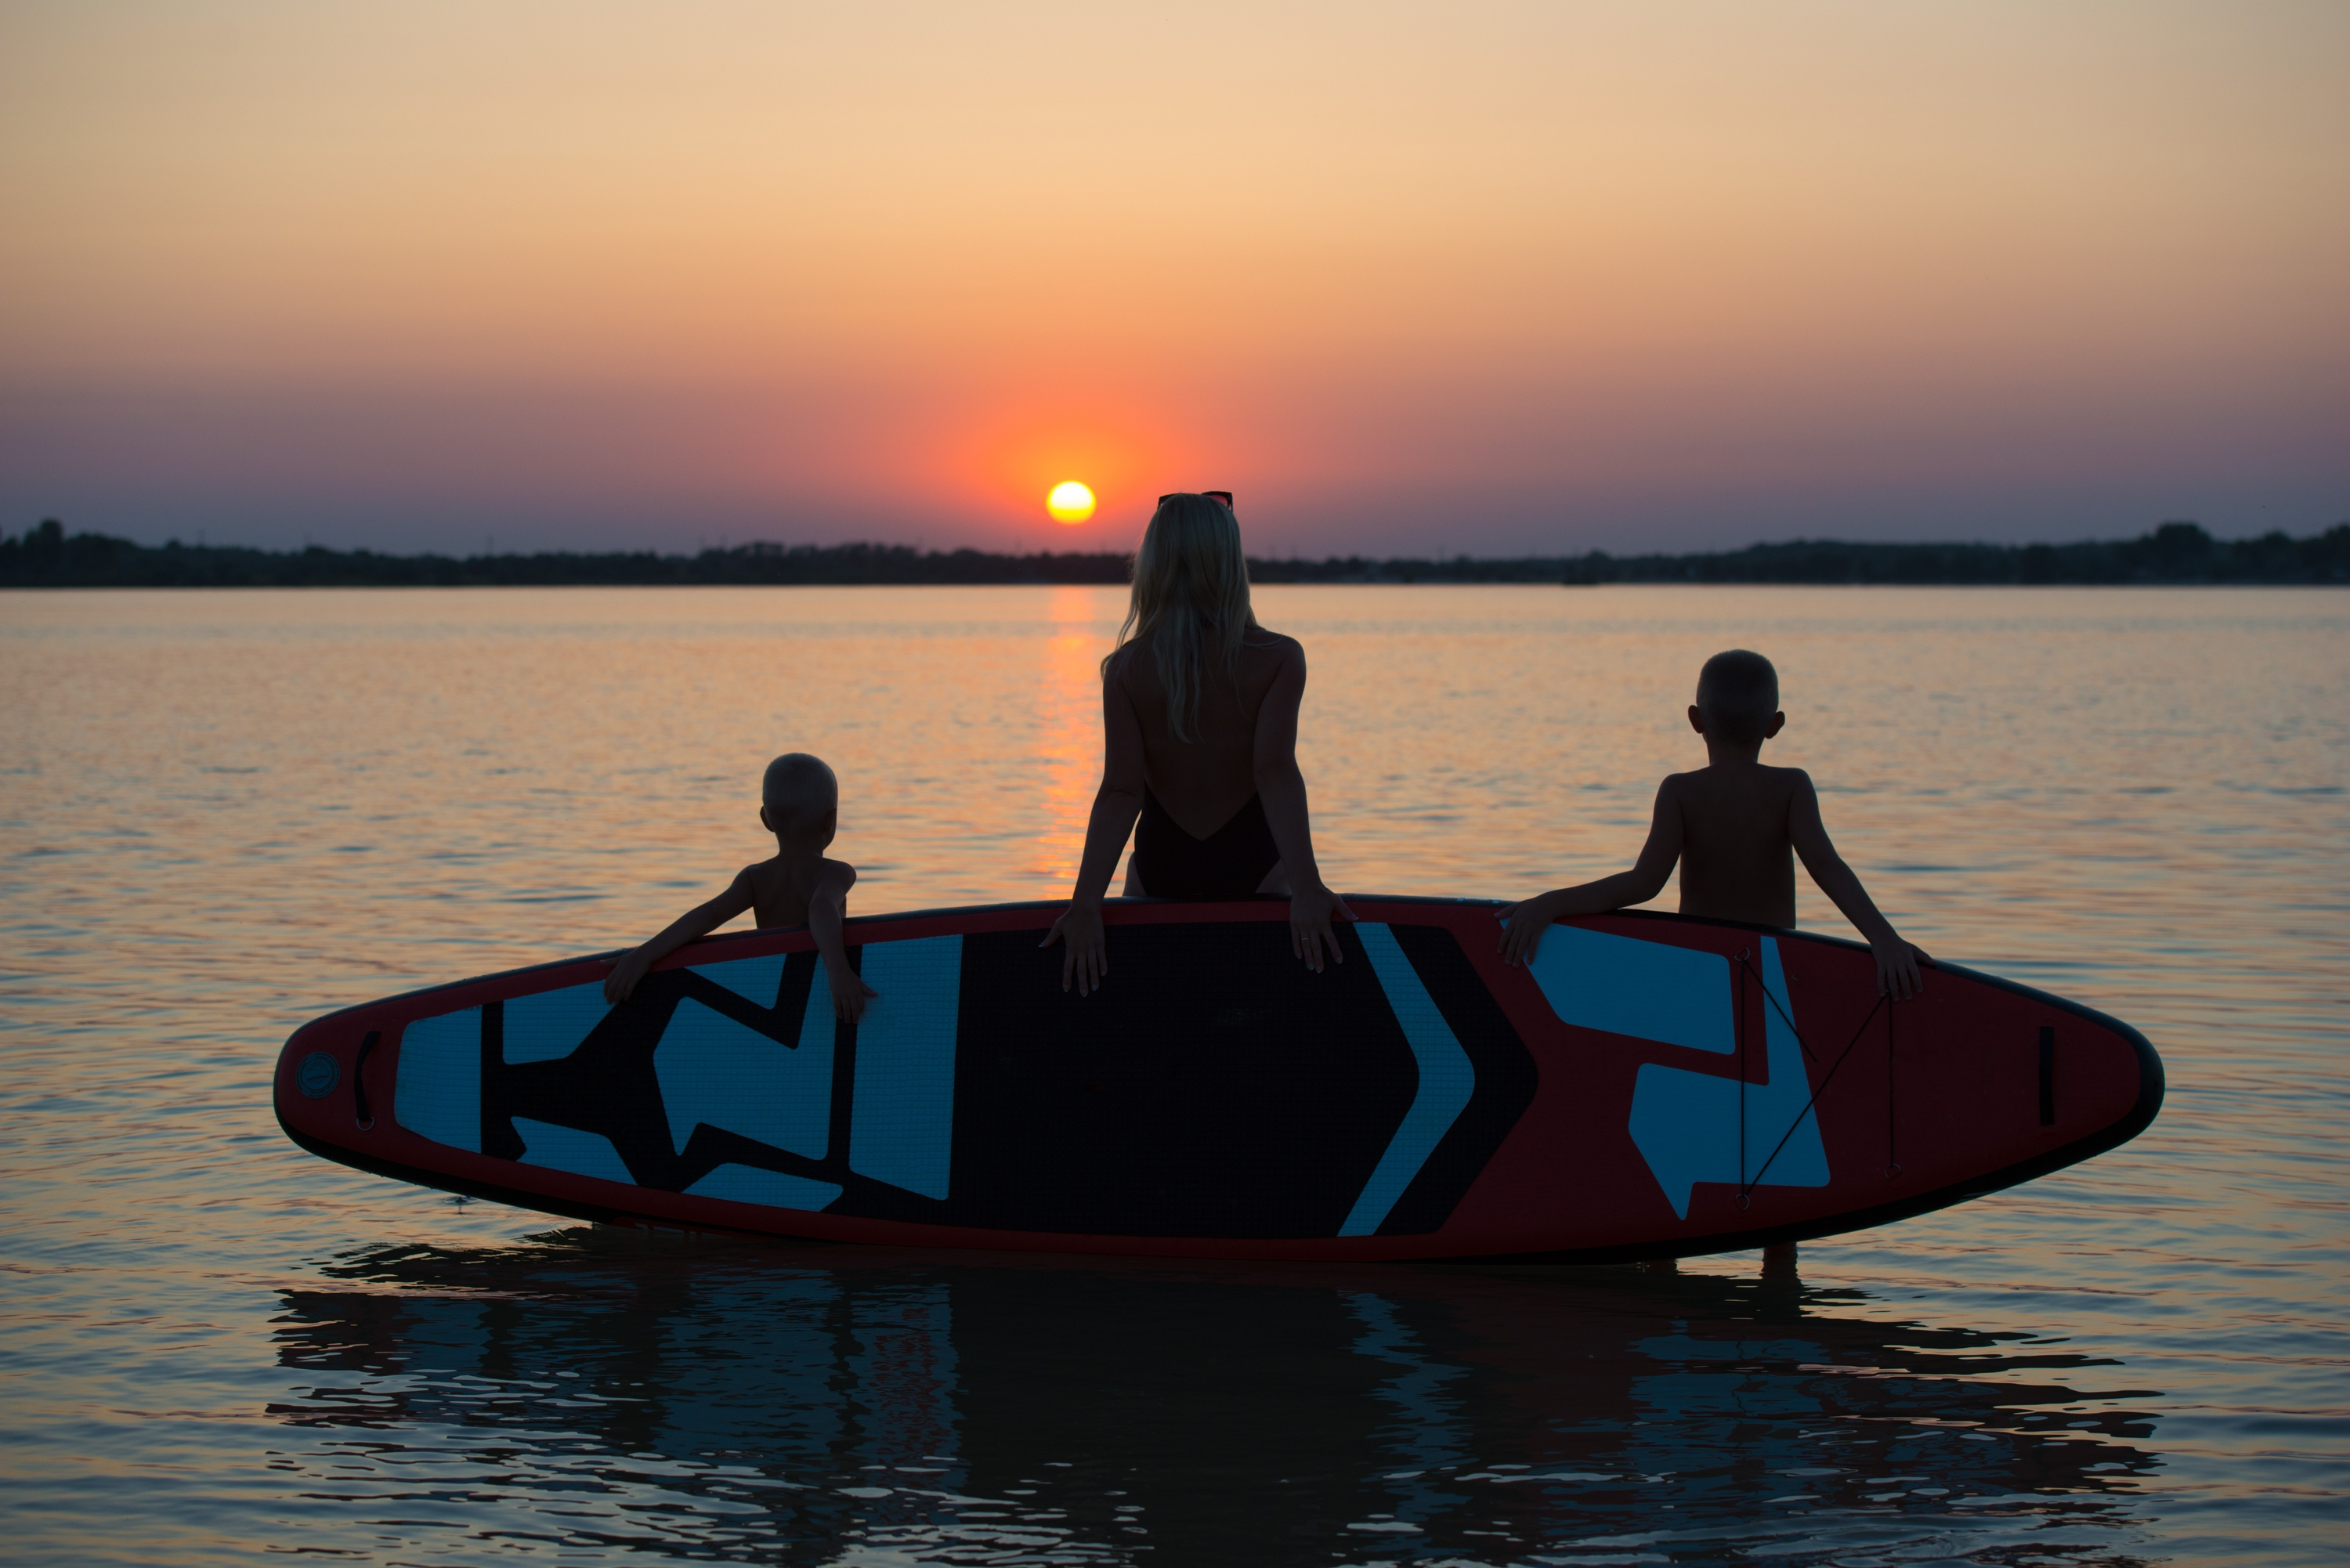 Paddleboarding Safety Guidelines When With A Child